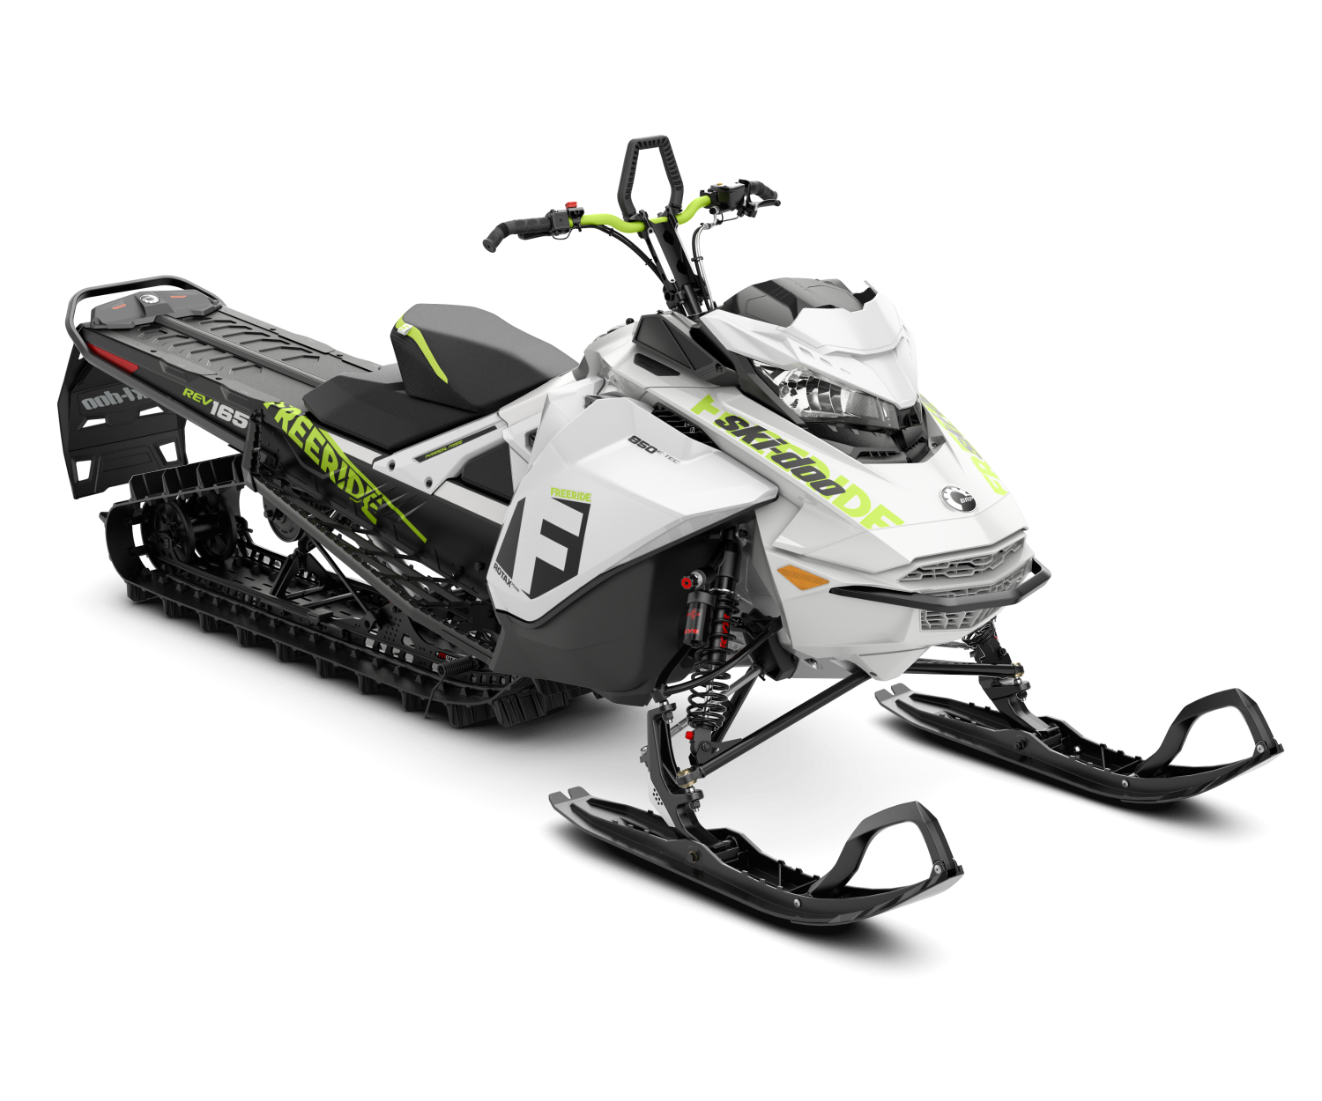 ski doo neu as - photo #47